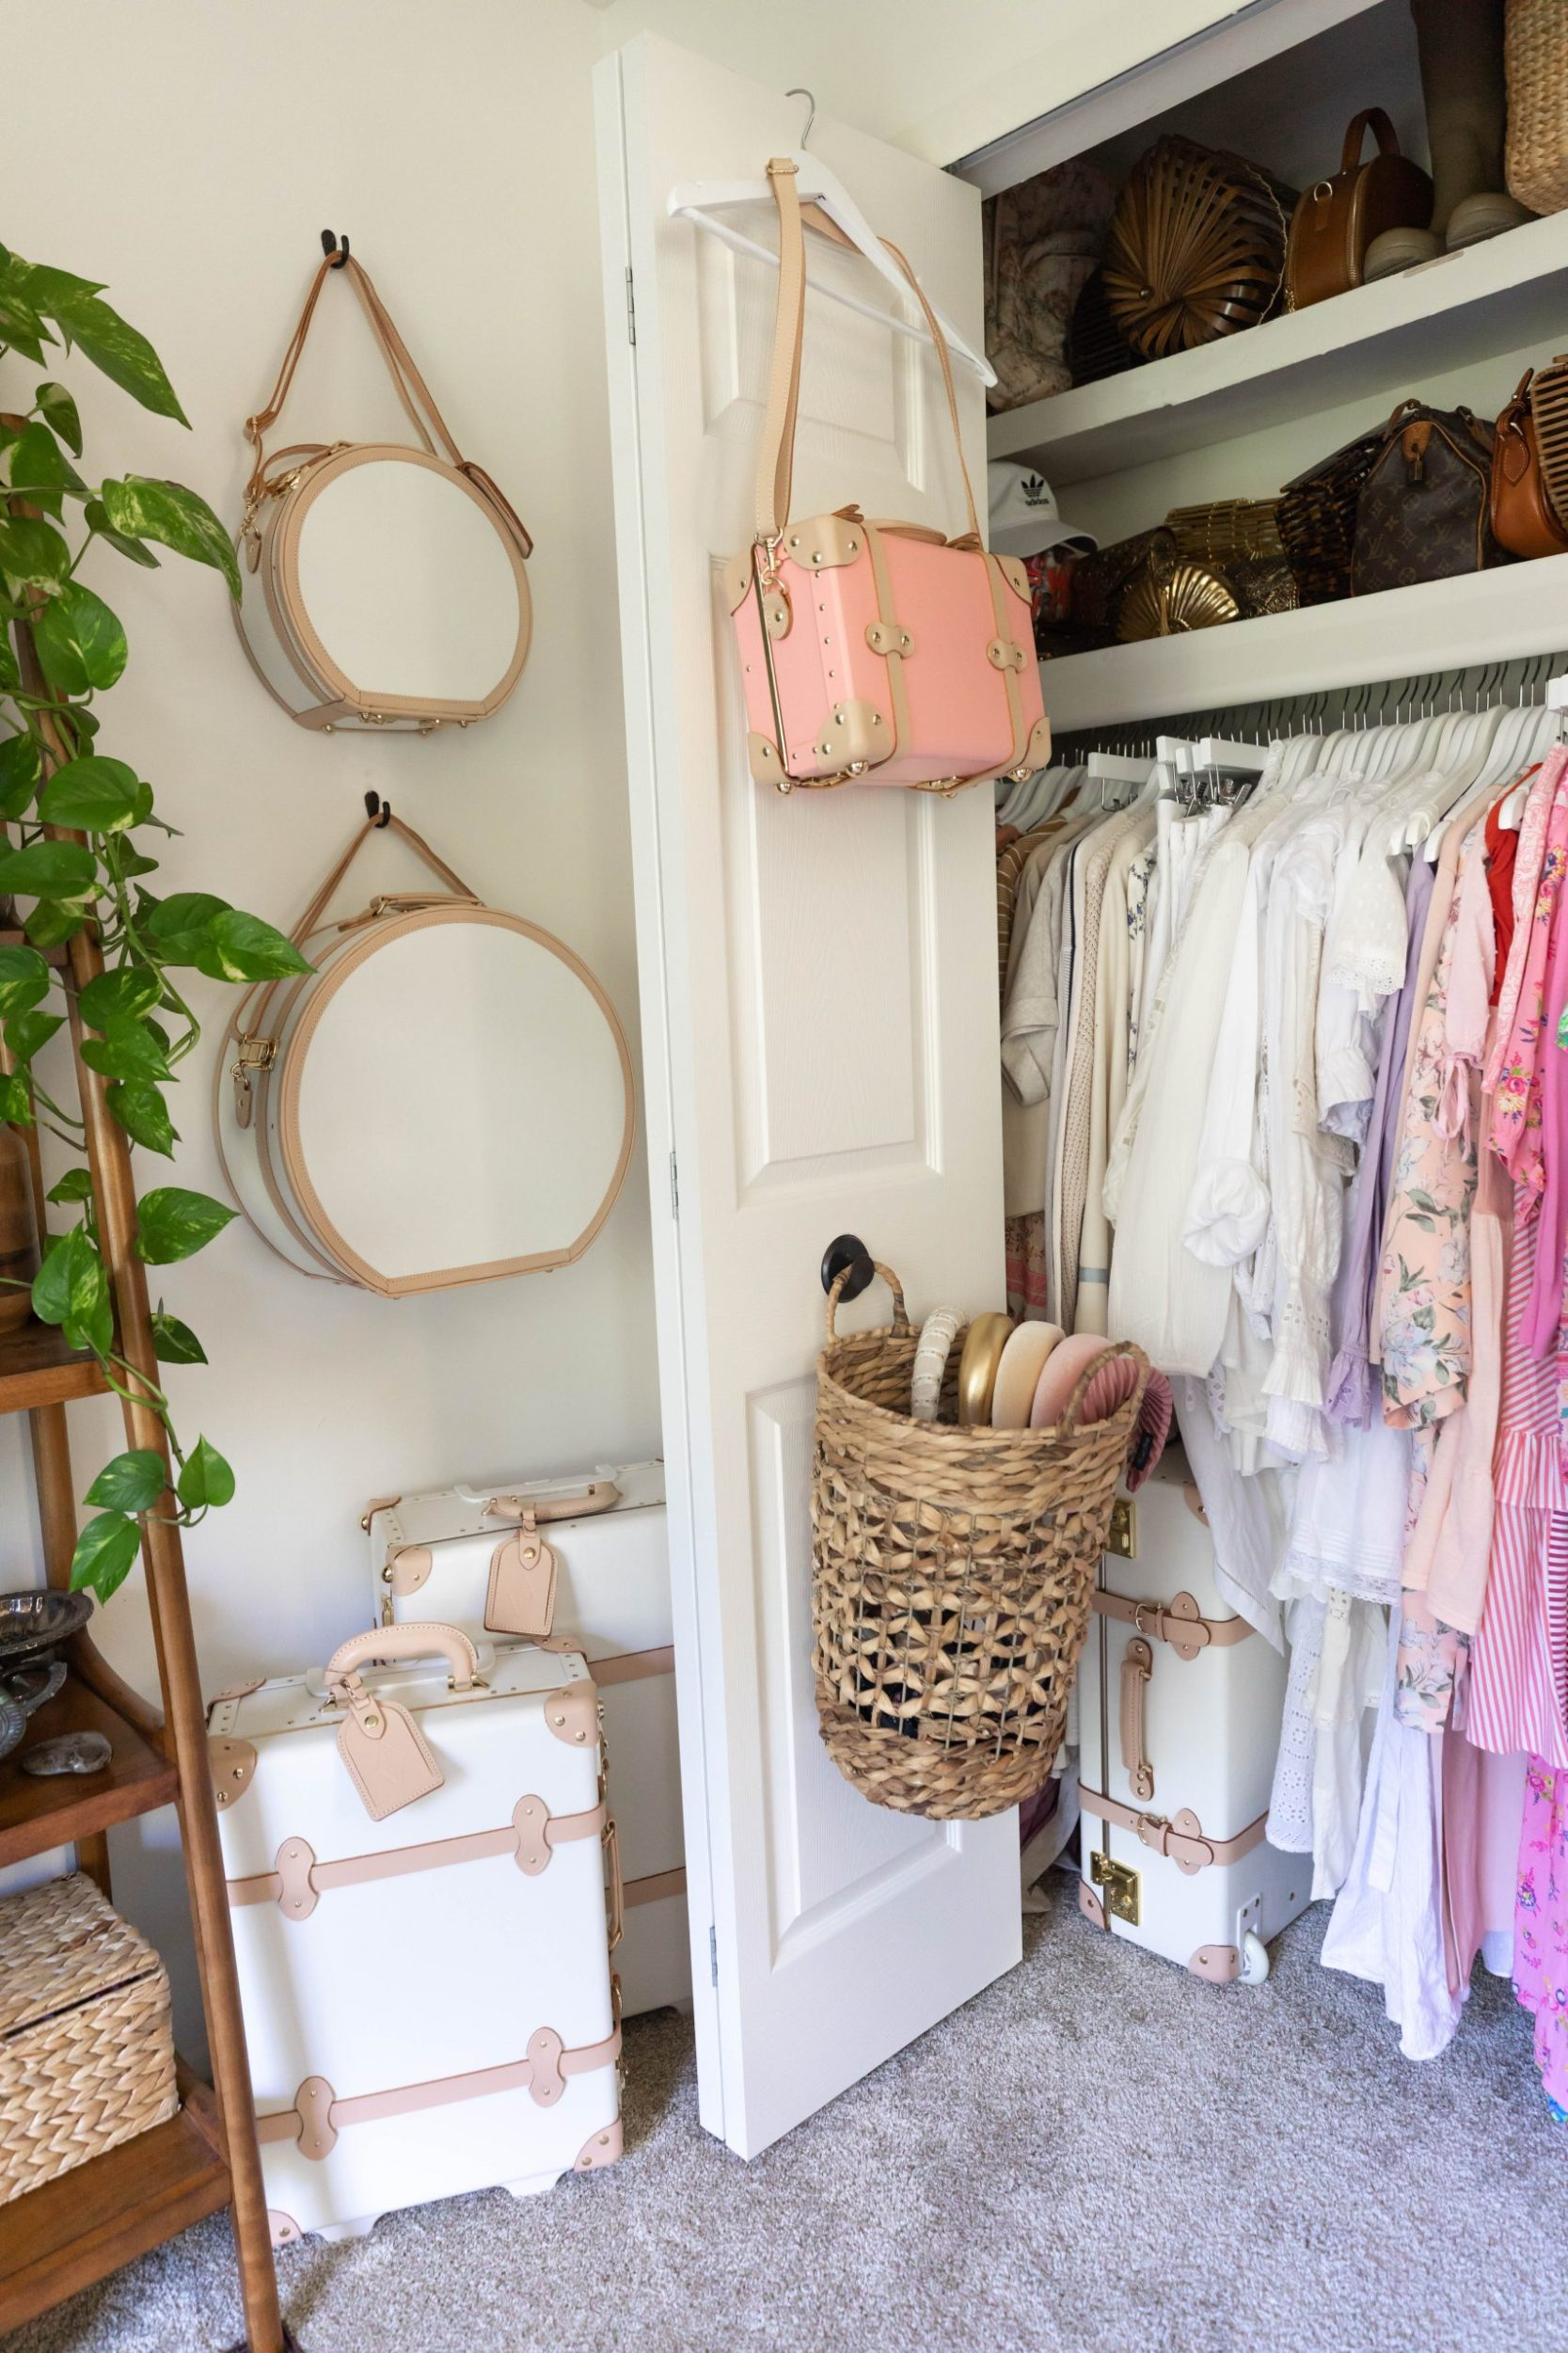 My Home Office Tour Steamline Luggage and Color Coordinated Closet